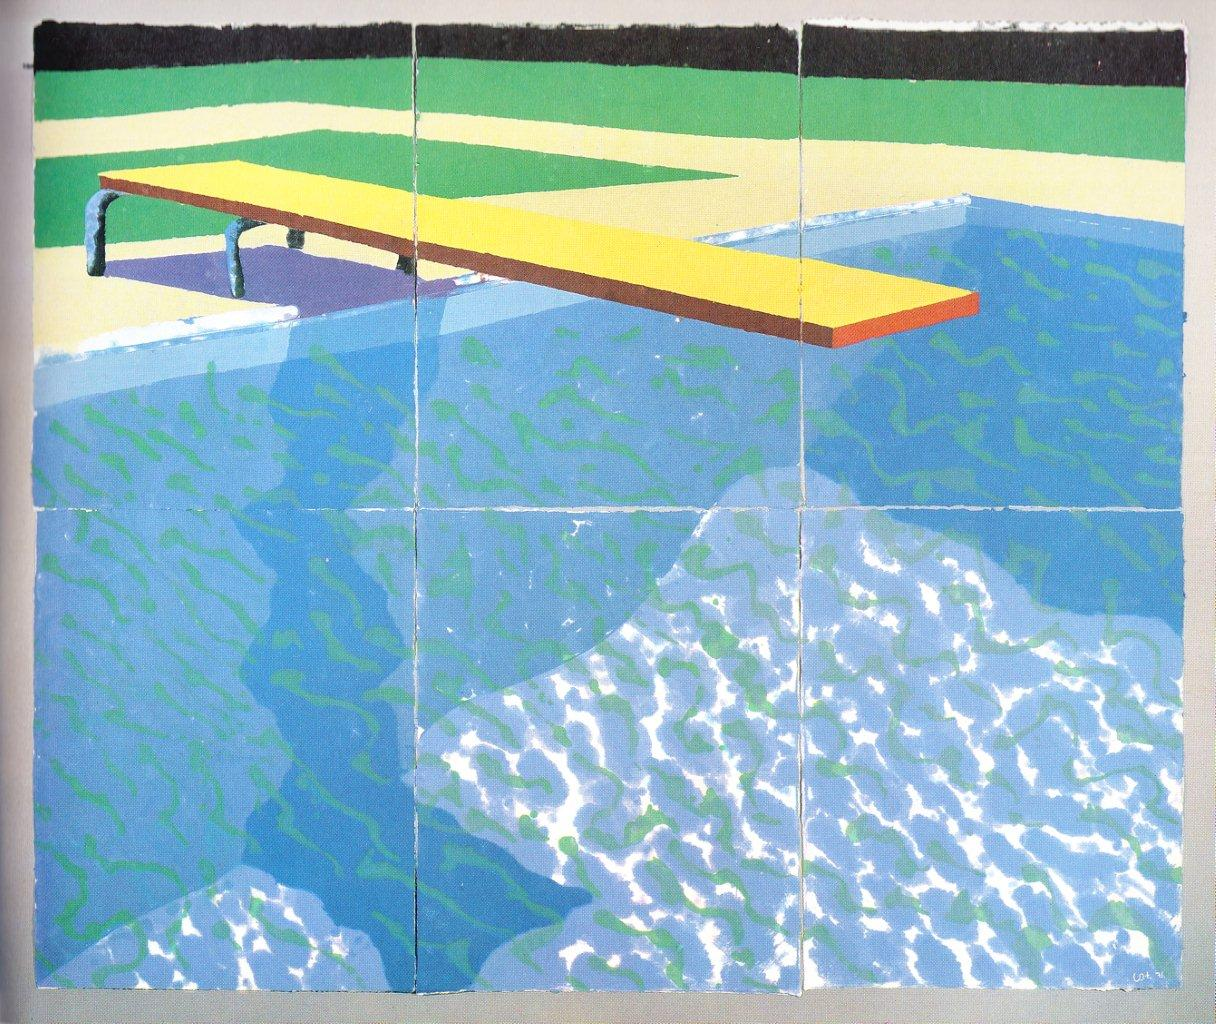 Swimming Pool Painters : Western independent david hockney at the ra